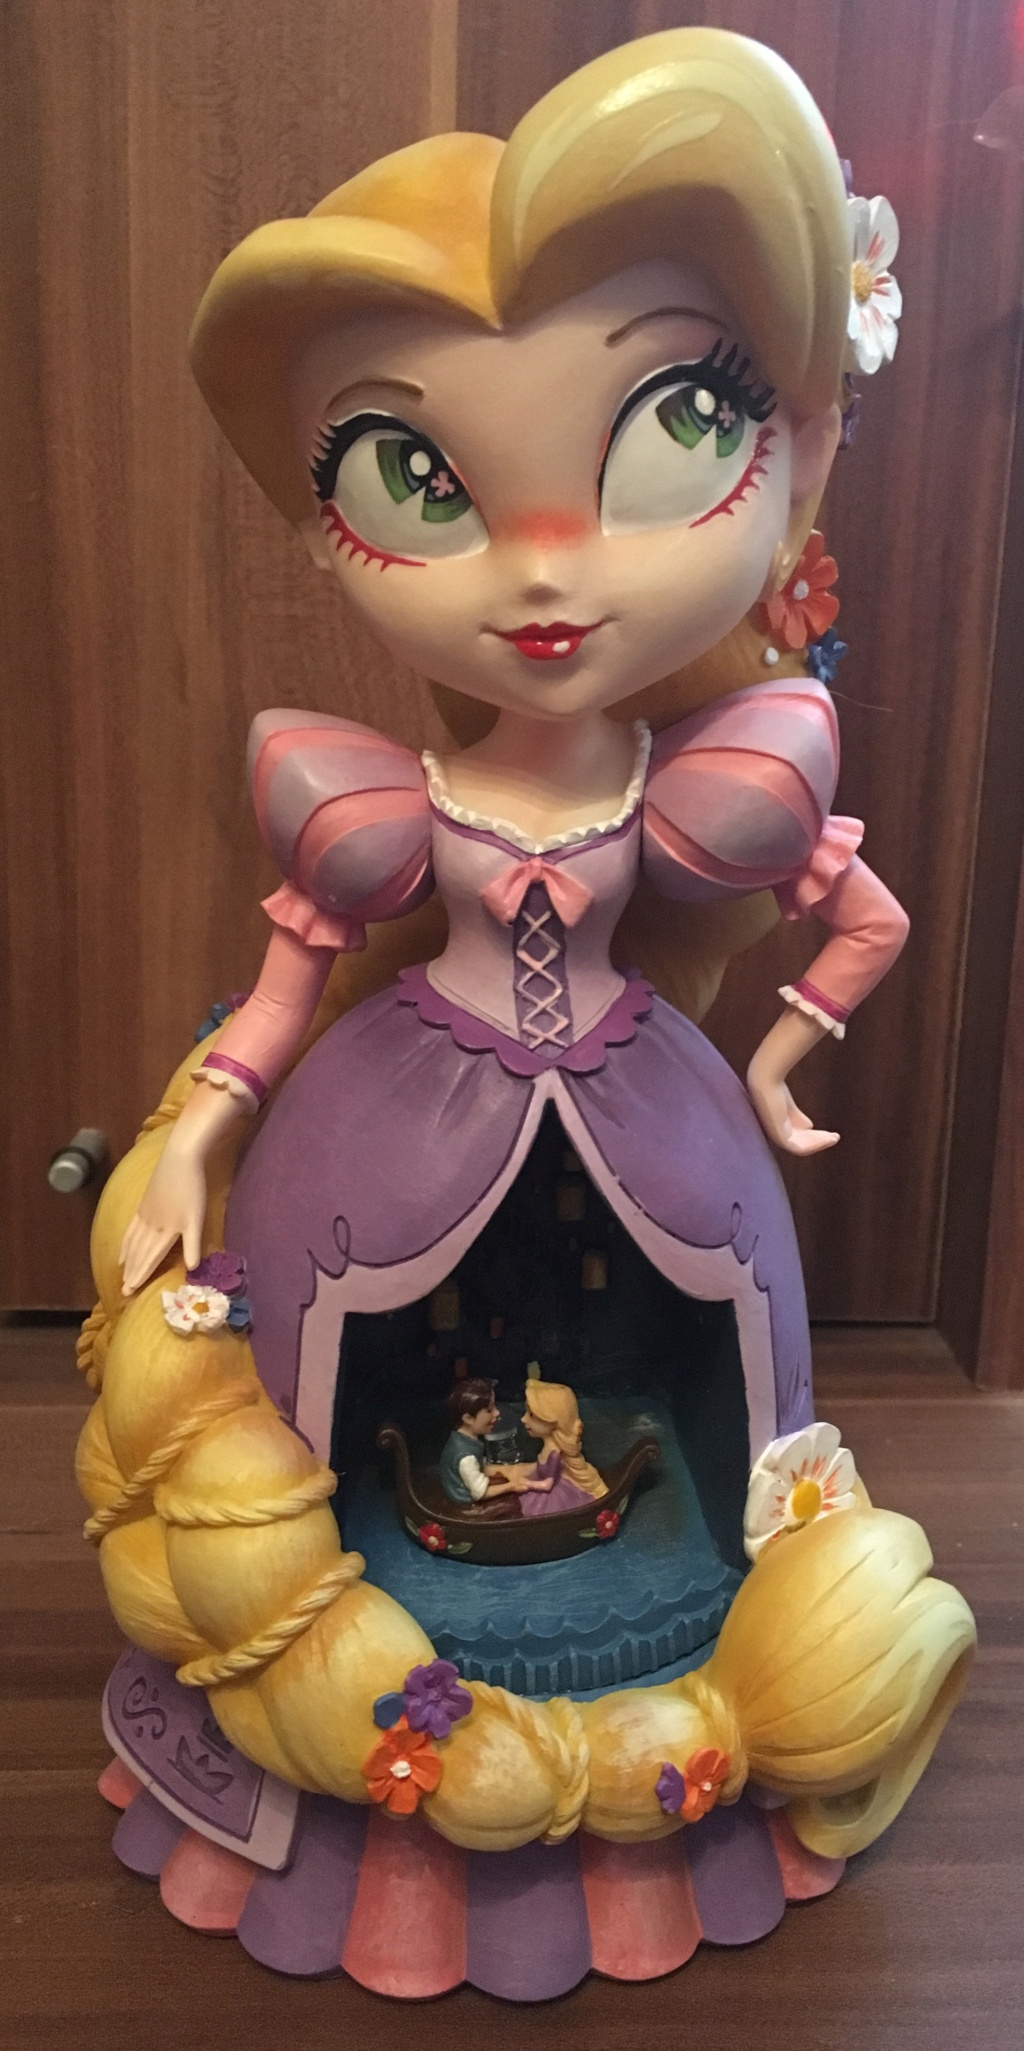 The World of Miss Mindy Presents Disney - Enesco (depuis 2017) - Page 3 161f5110